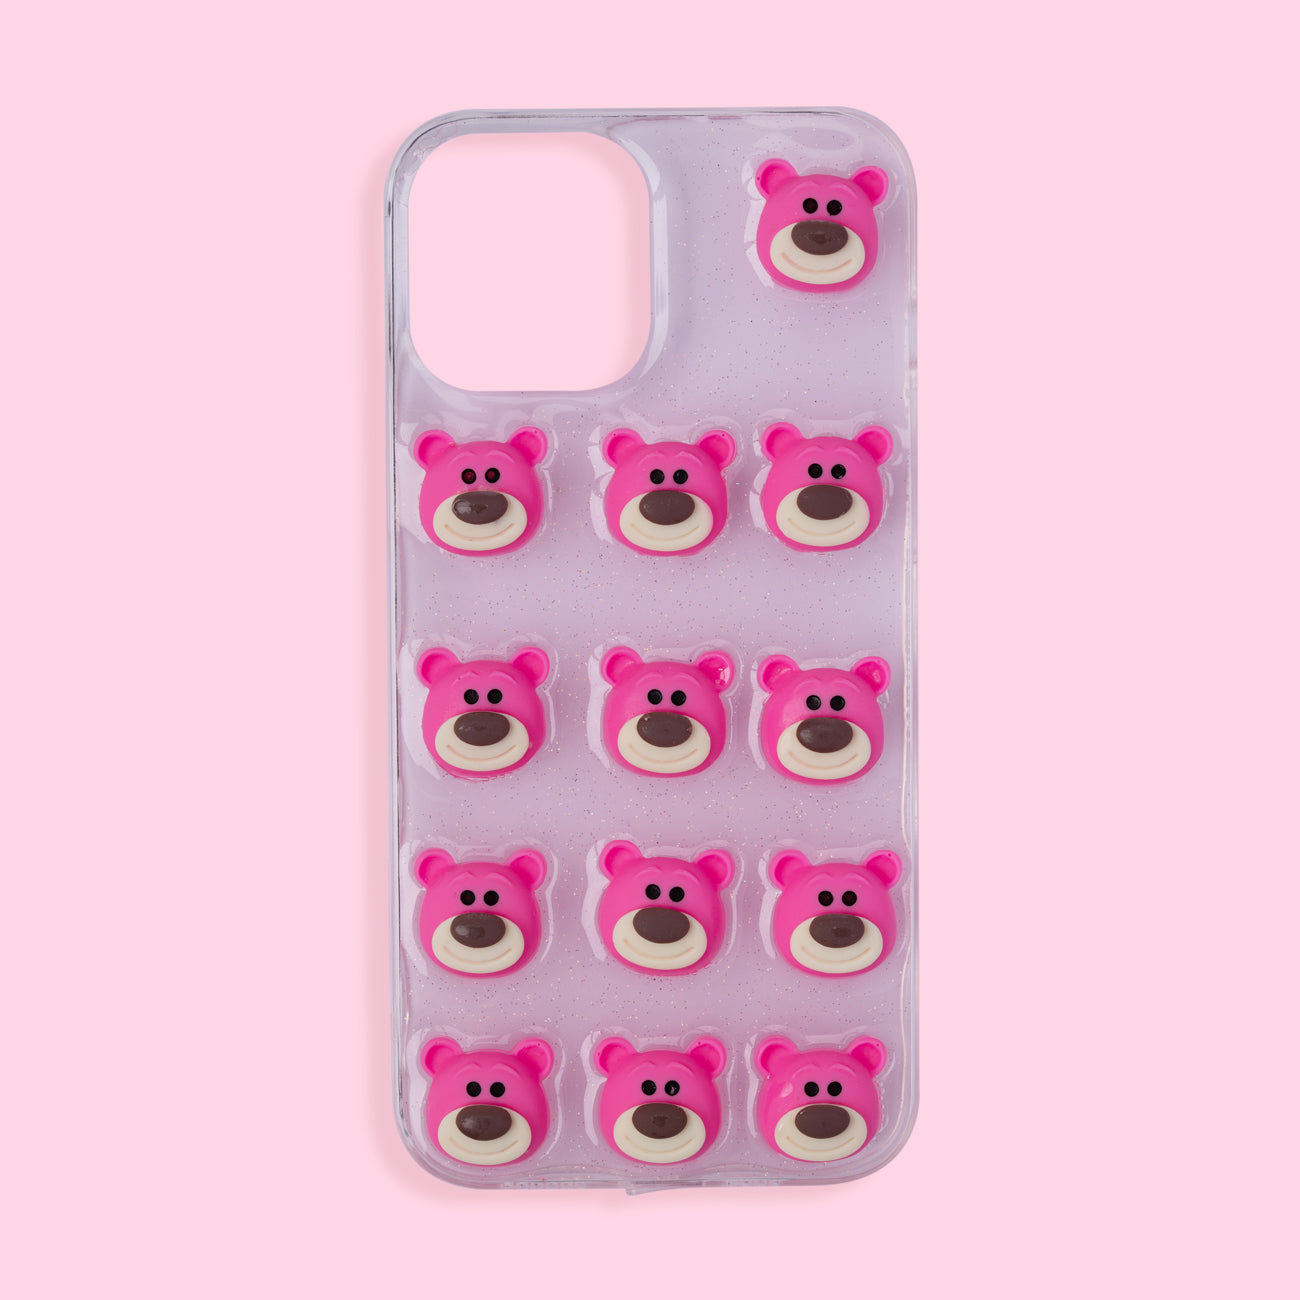 iPhone 12 Pro Max Case - 3D Bear - Pink